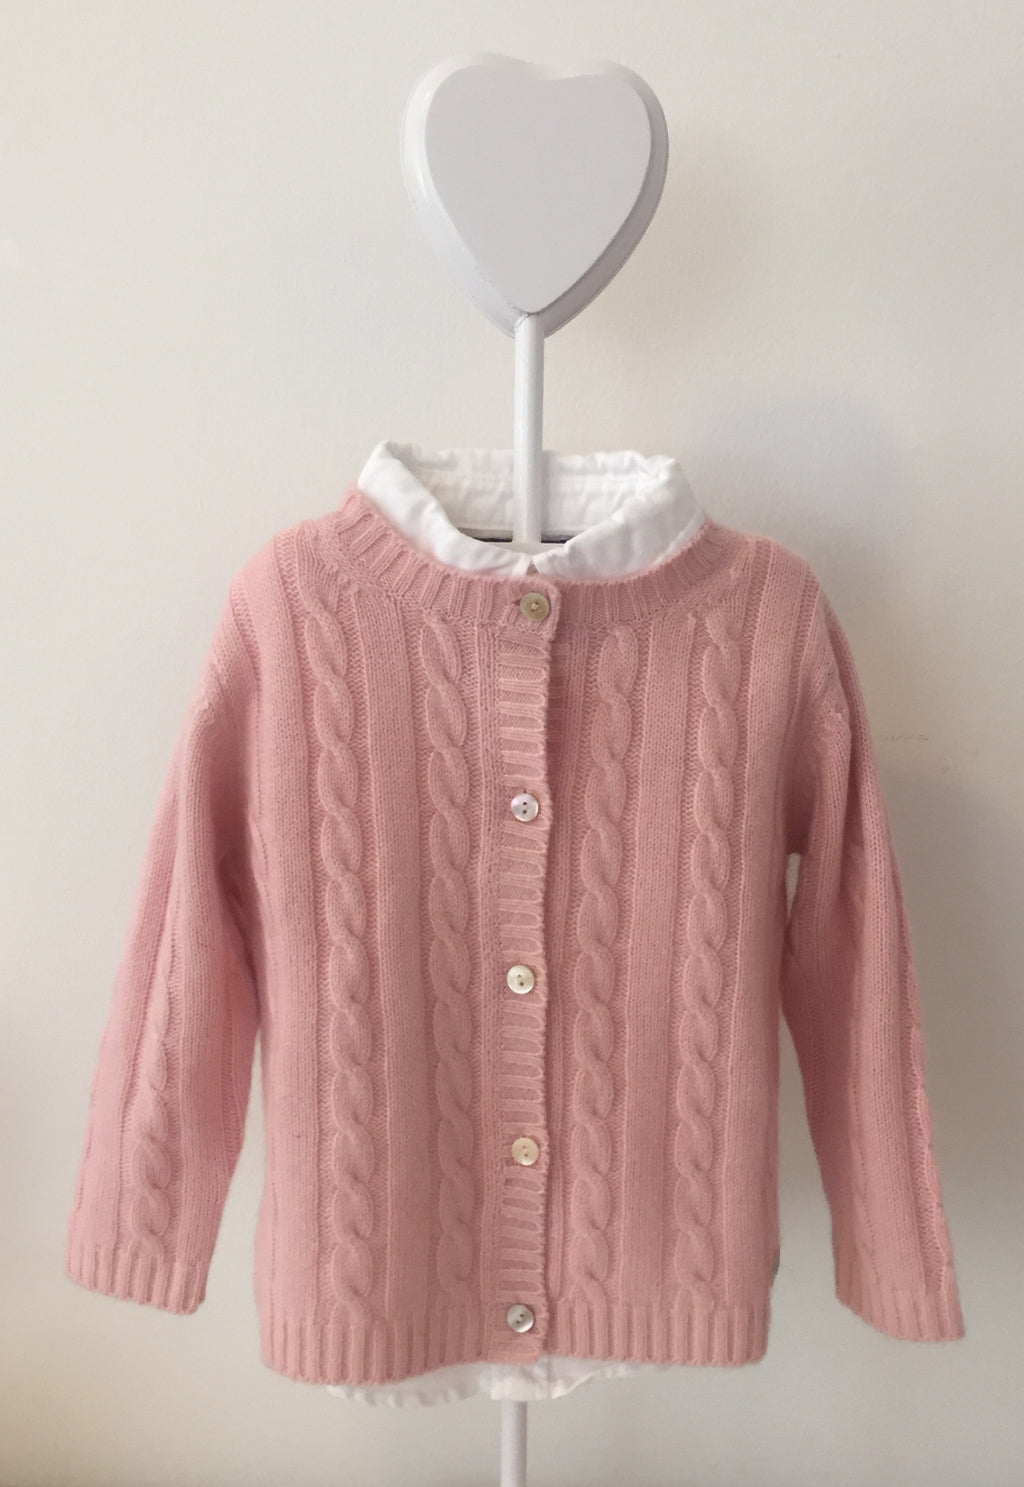 Pure Cashmere Cardigan Cable-Knit, 100% eco-friendly - MINIMAINS